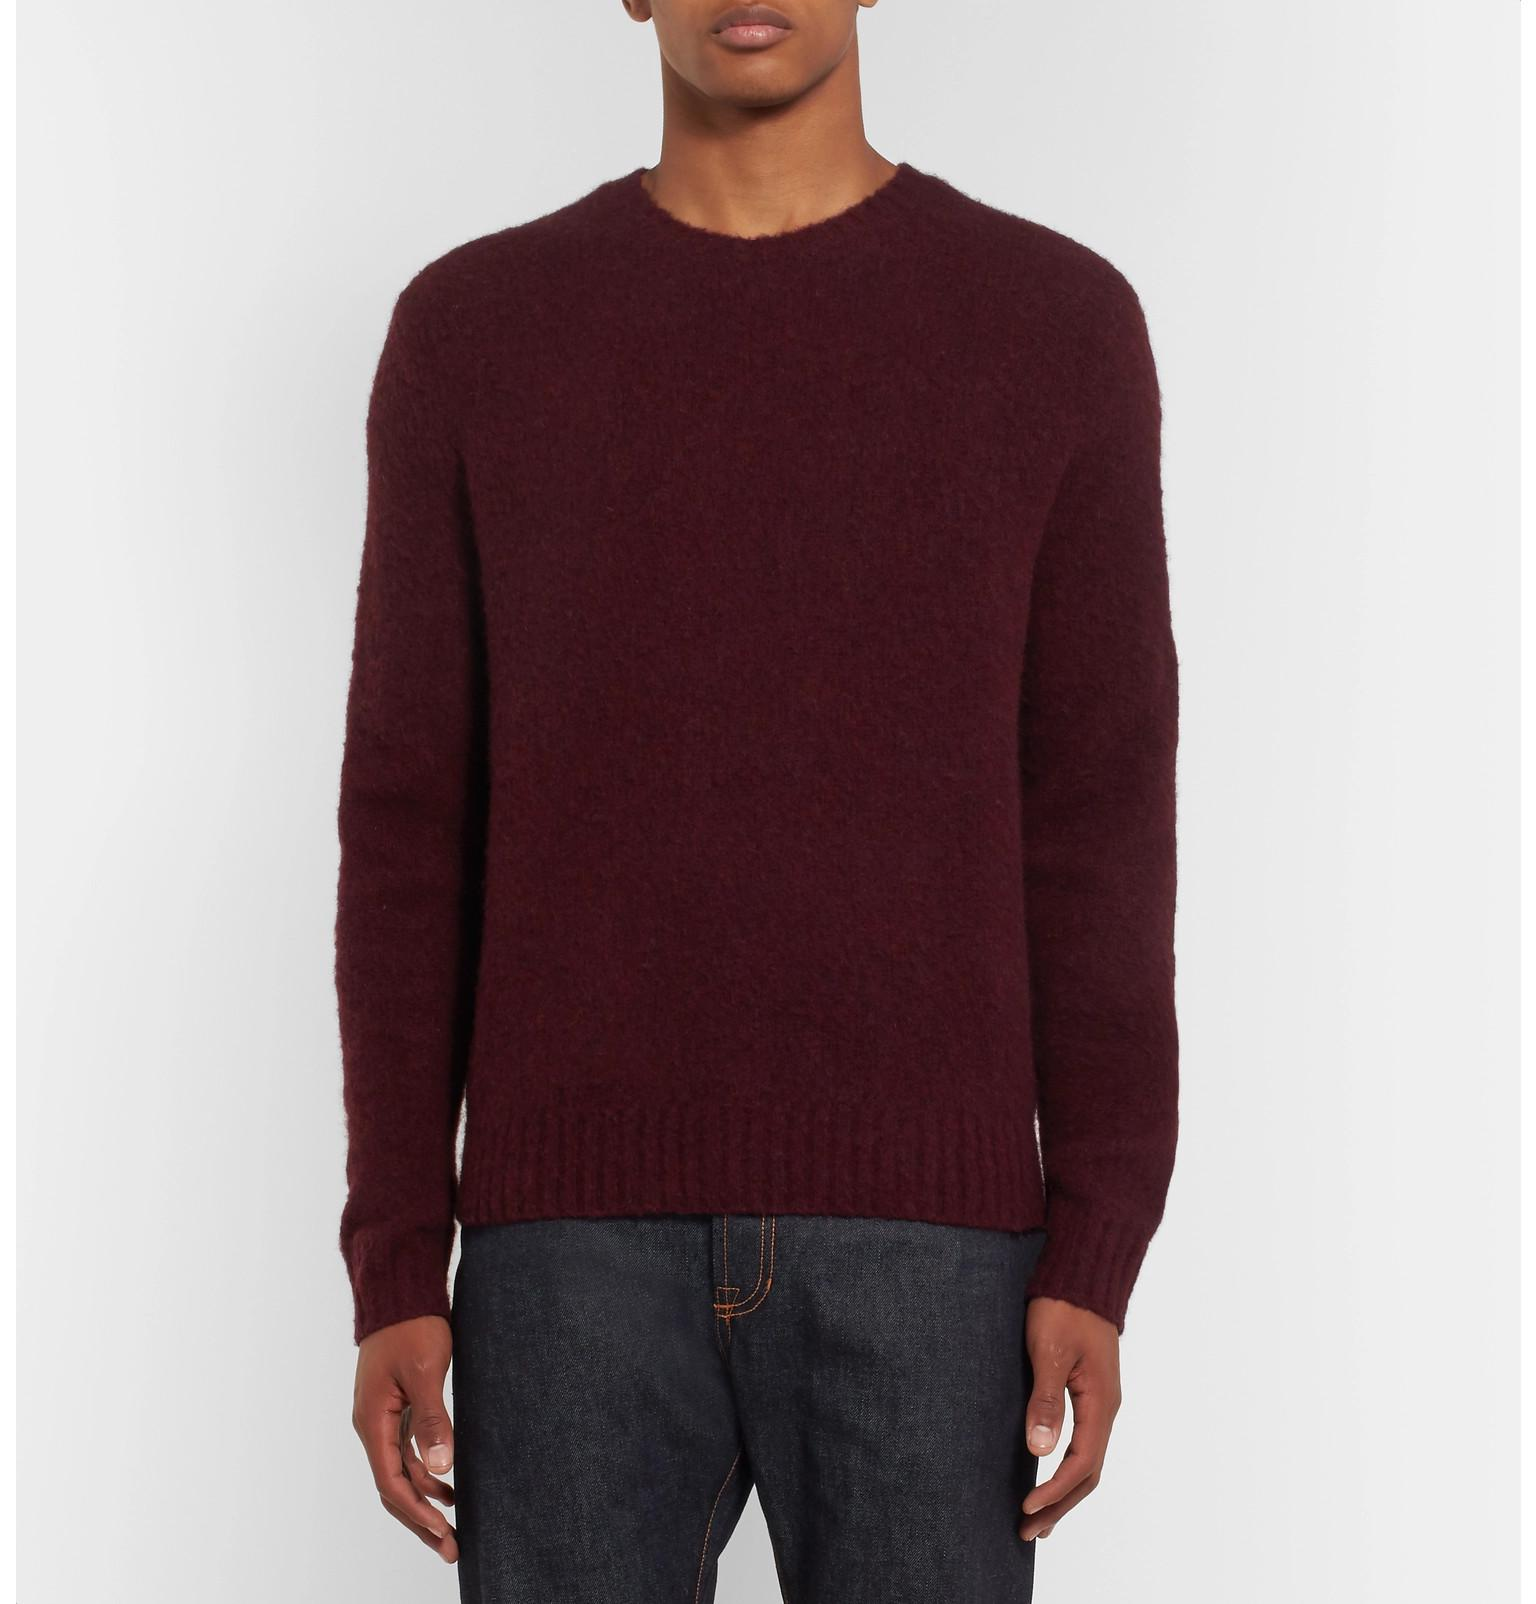 Suede Cashmere Ralph For Patch Polo Lauren Blend Fullscreen Multicolor Sweater Elbow Wool View And d811tqwxP